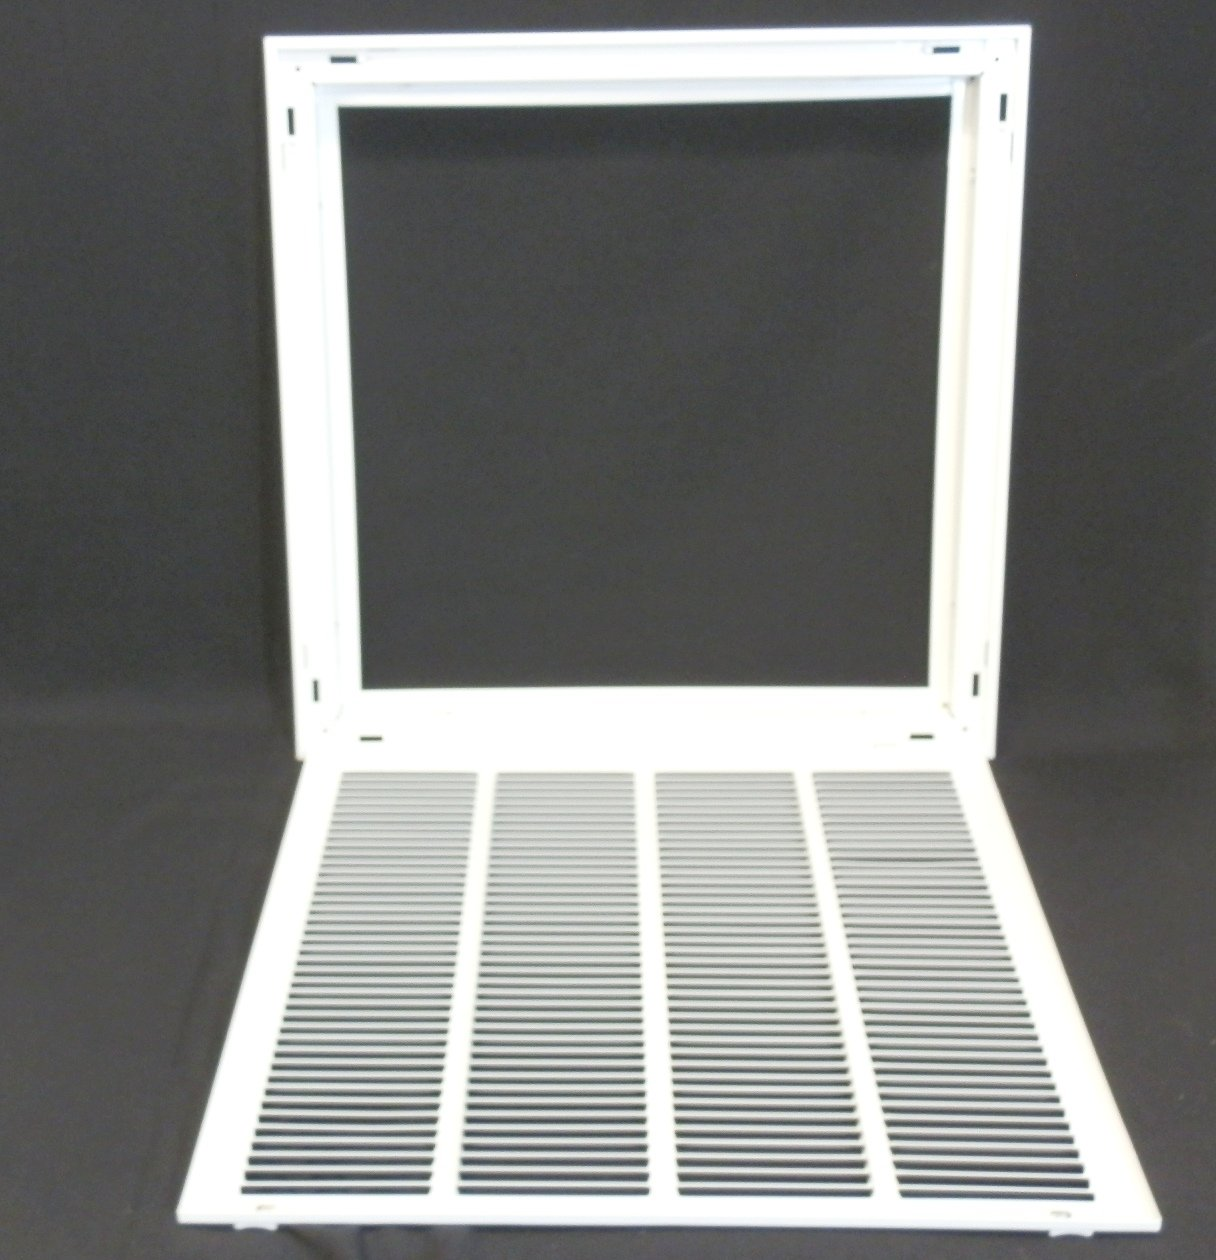 #636C5F 20w X 20h RETURN FILTER GRILLE HVAC Dcut Cover Flat  Most Effective 4515 Hvac Return Air Grilles pictures with 1216x1260 px on helpvideos.info - Air Conditioners, Air Coolers and more